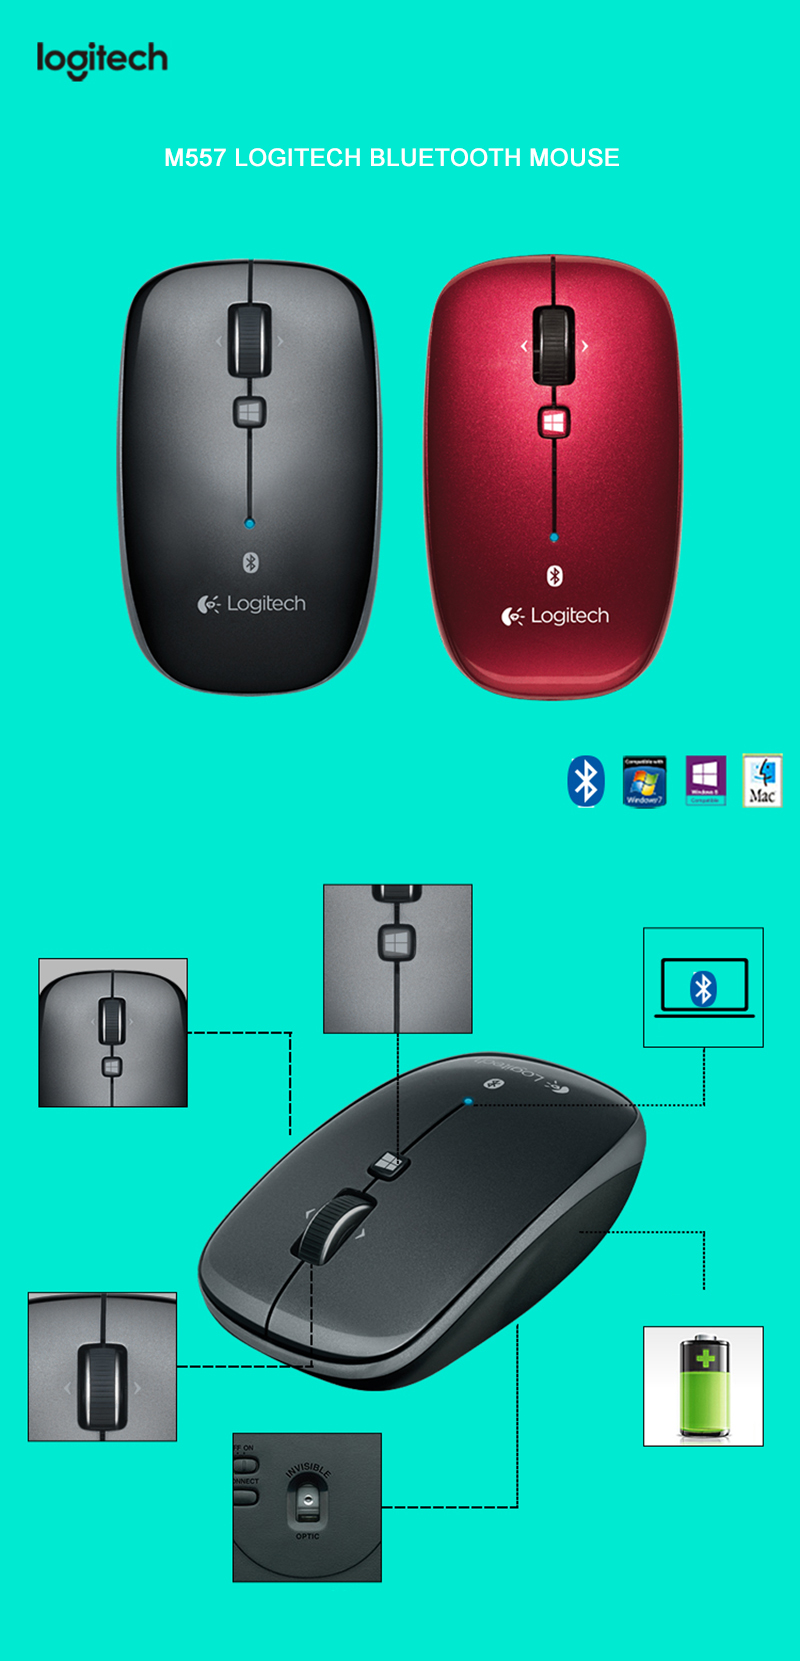 Logitech M557 Bluetooth Wireless Mouse with Ergonomic Mice